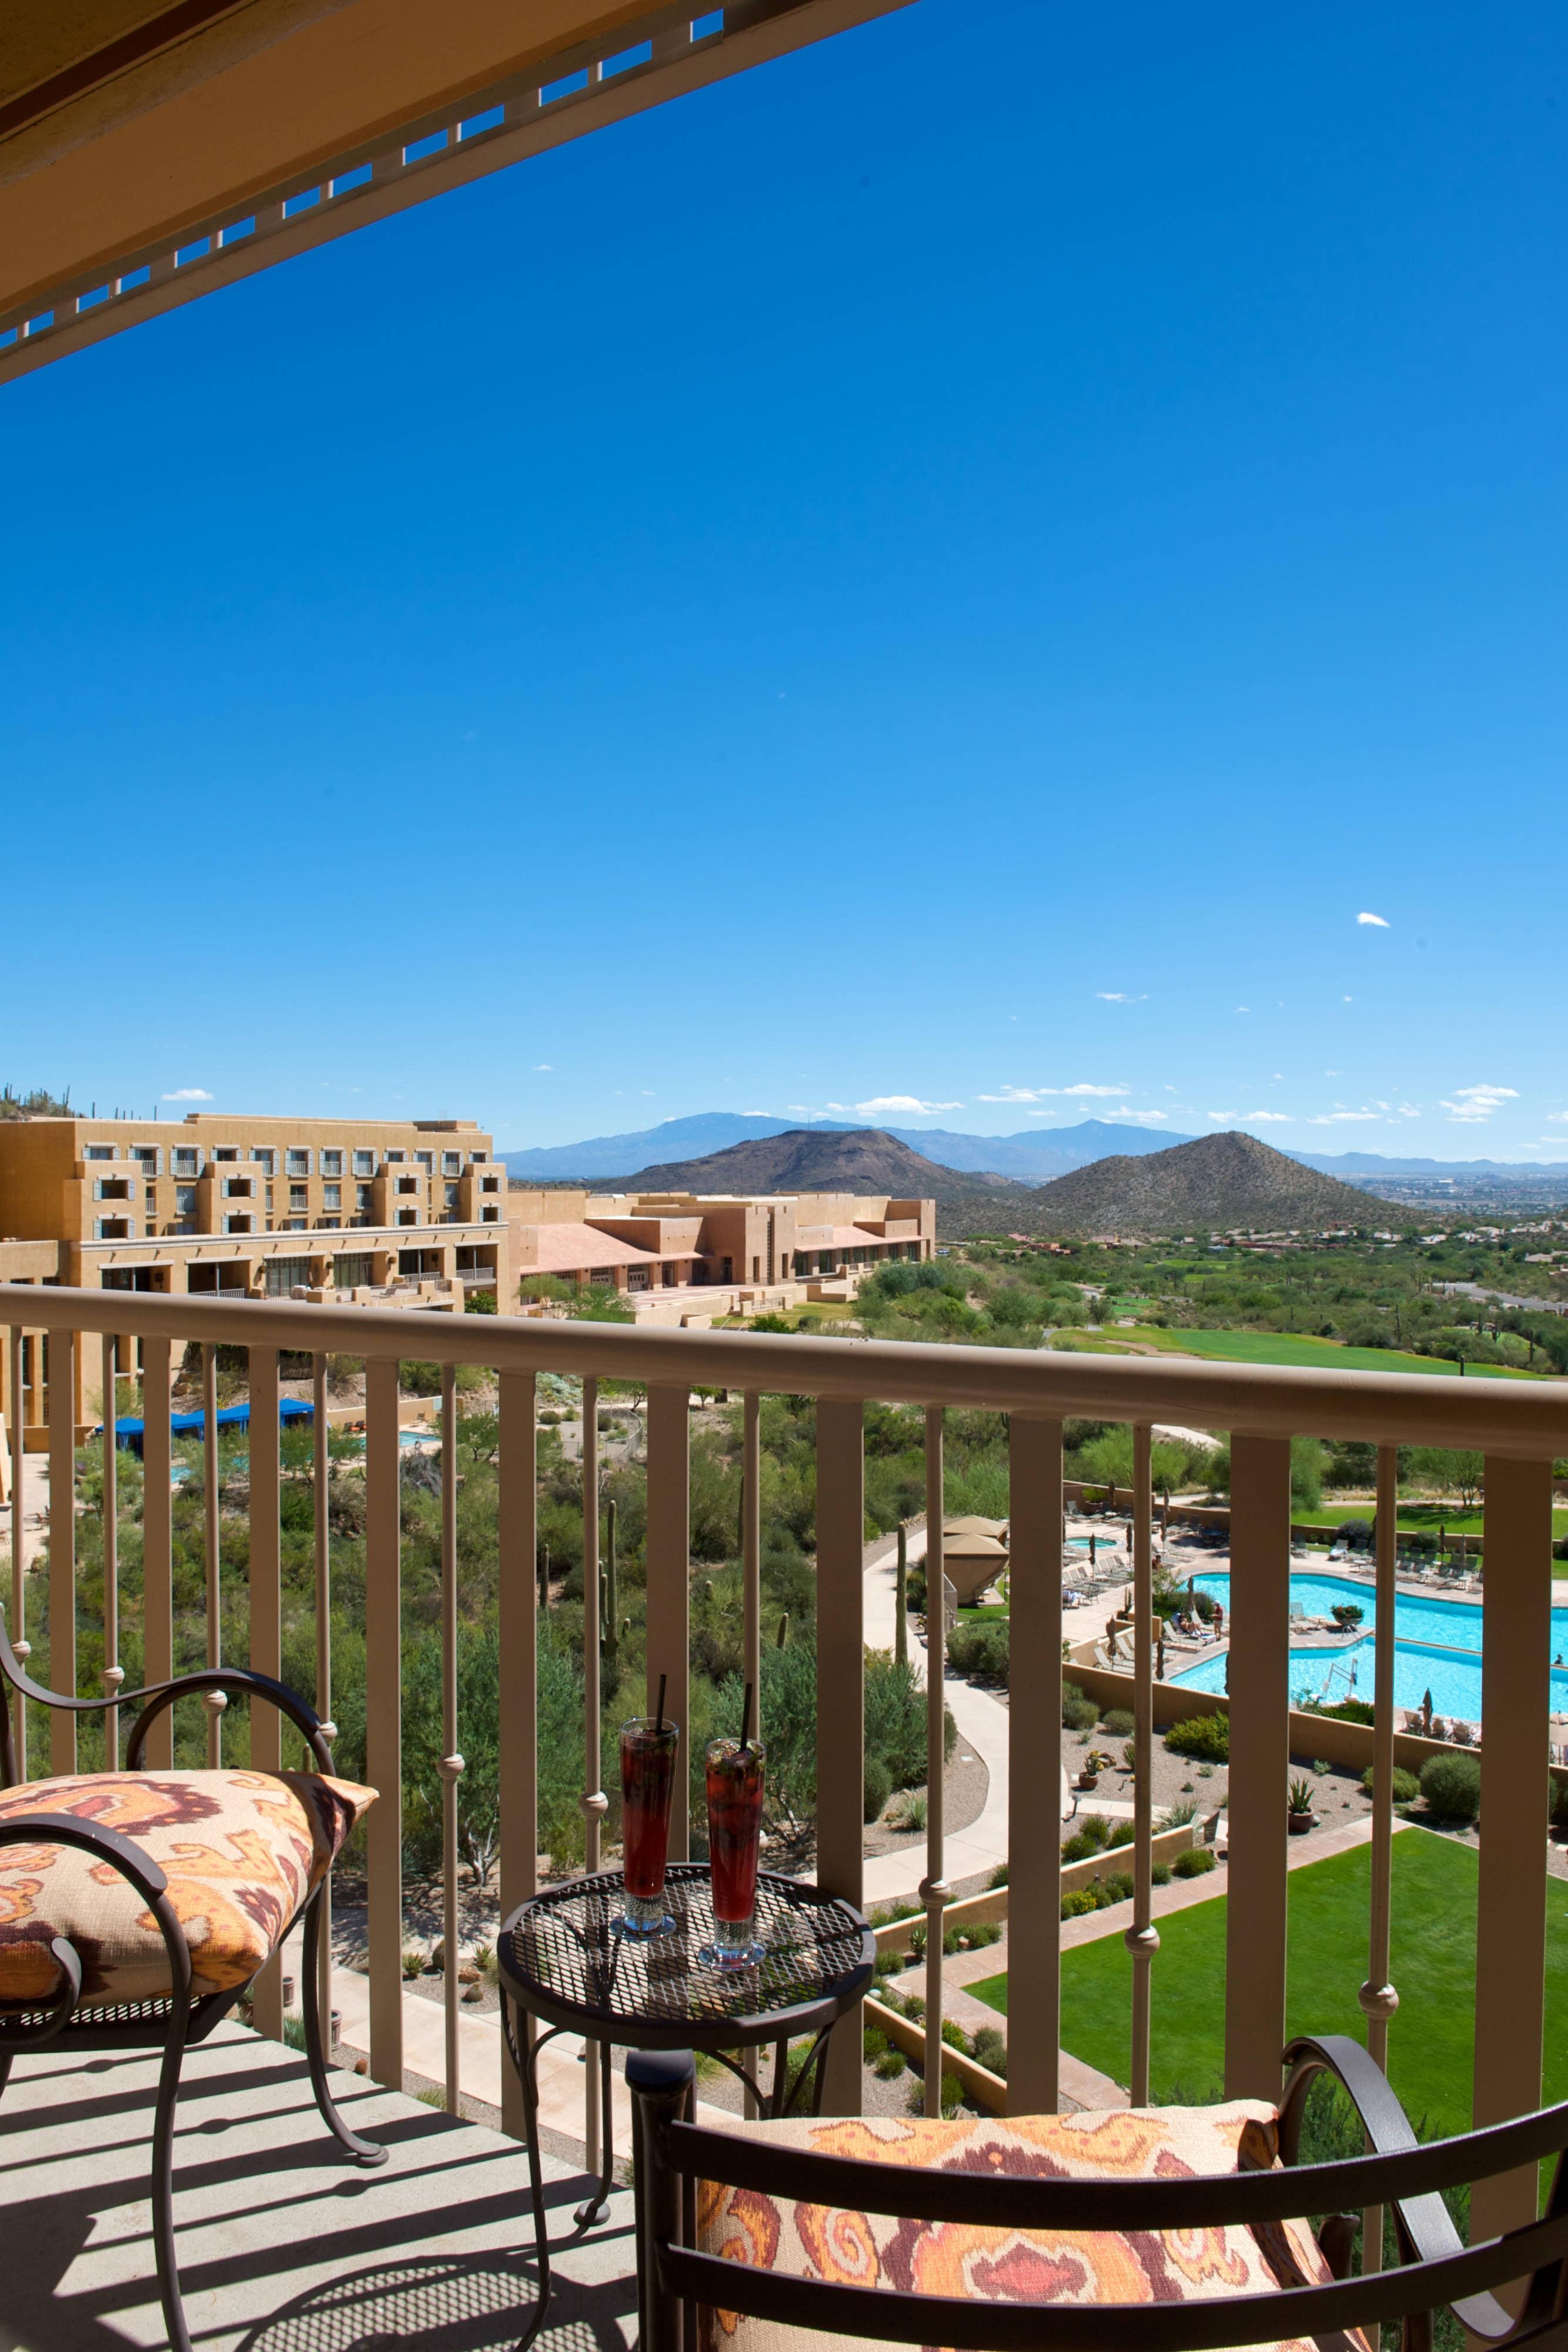 Balcony at JW Marriott Tucson